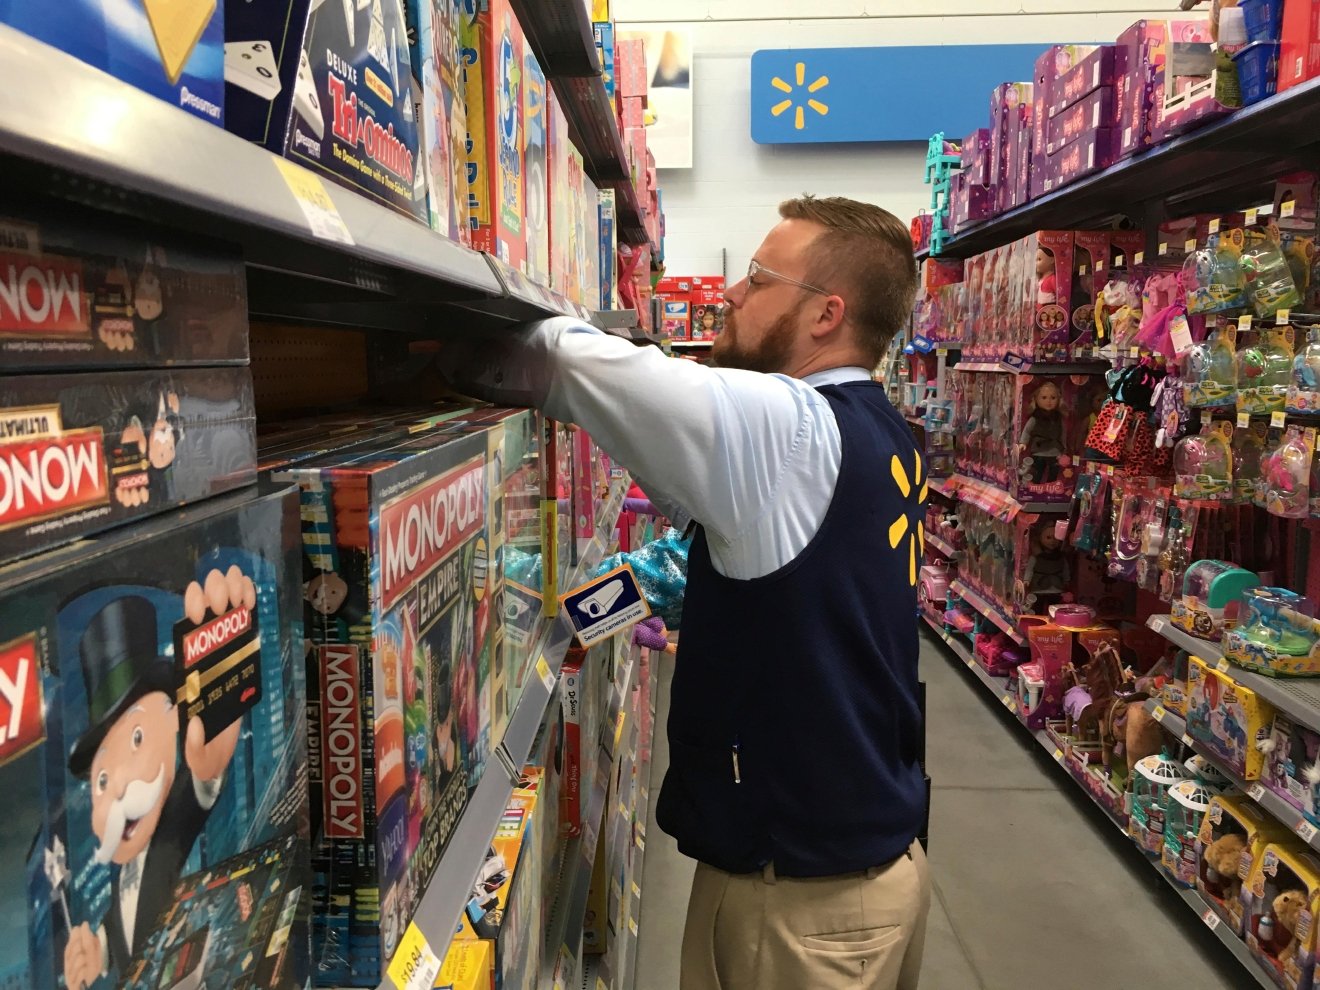 Denver Wal-Mart Supercenter employee Aaron Sanford stocks toys on shelves, Wednesday, Nov. 23, 2016, to prepare for a Thanksgiving night rush that kicks off this year's Black Friday weekend. Sanford and his colleagues anticipate hundreds will line up Thursday and thousands will come through the doors on Friday in search of bargains on toys and electronics. (AP Photo/Jim Anderson)